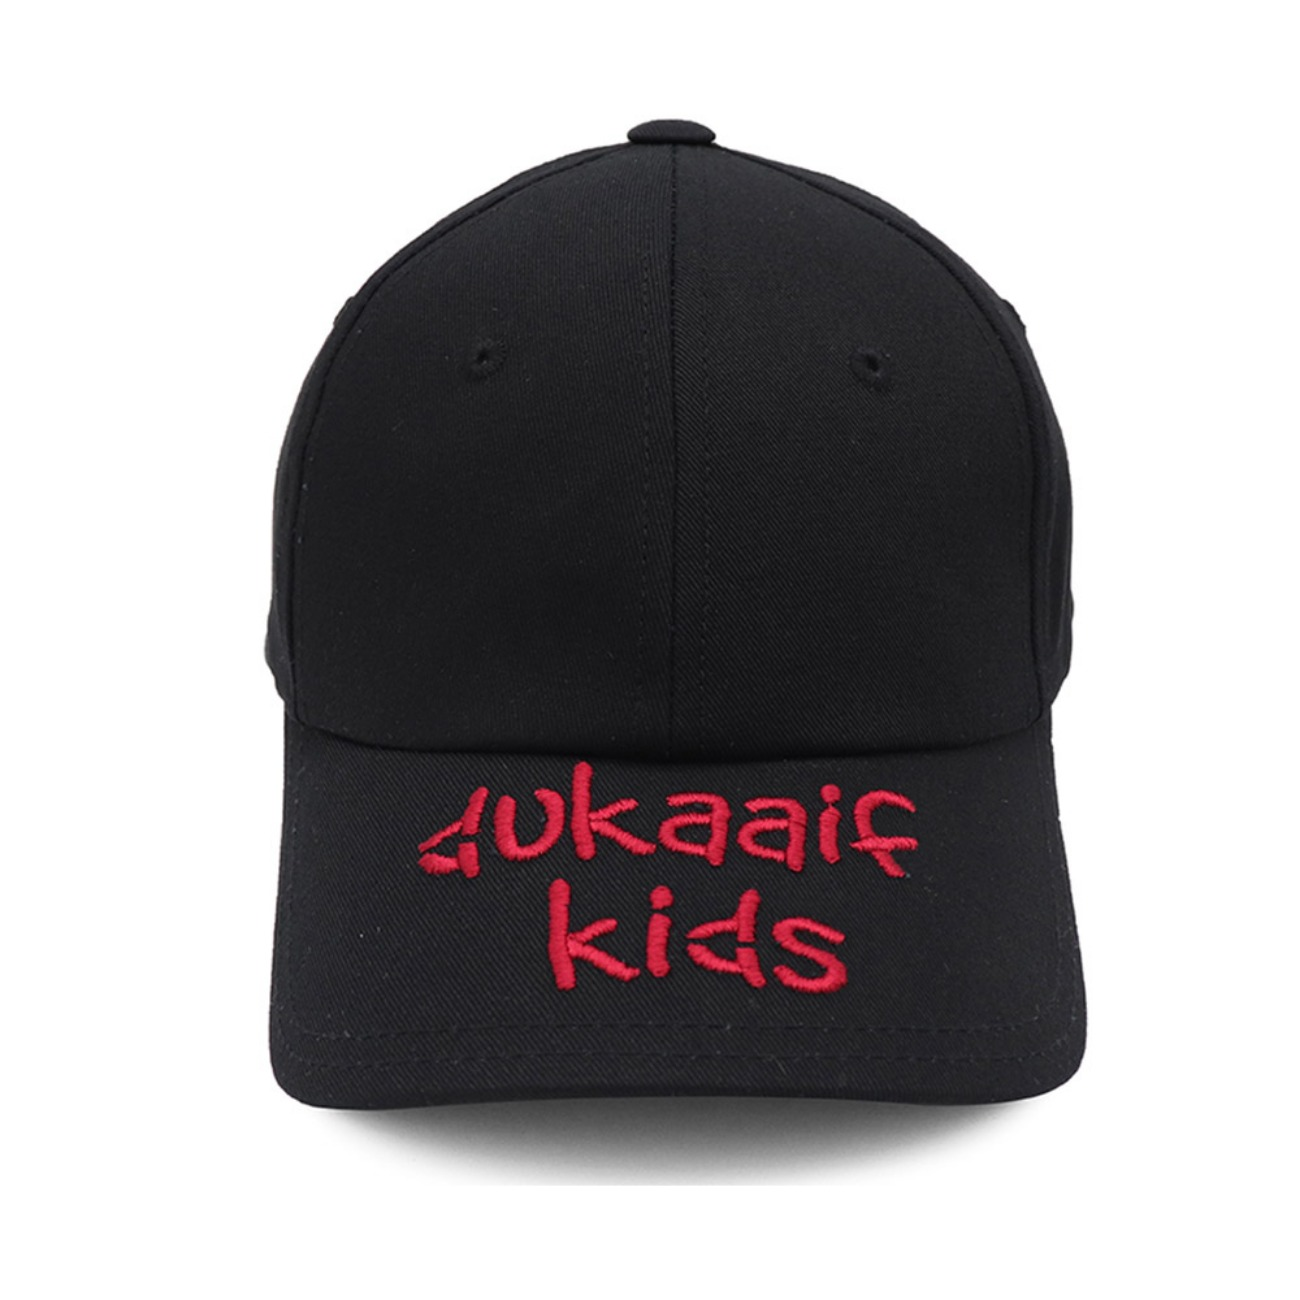 Kids Frankendust Black&red(visor)